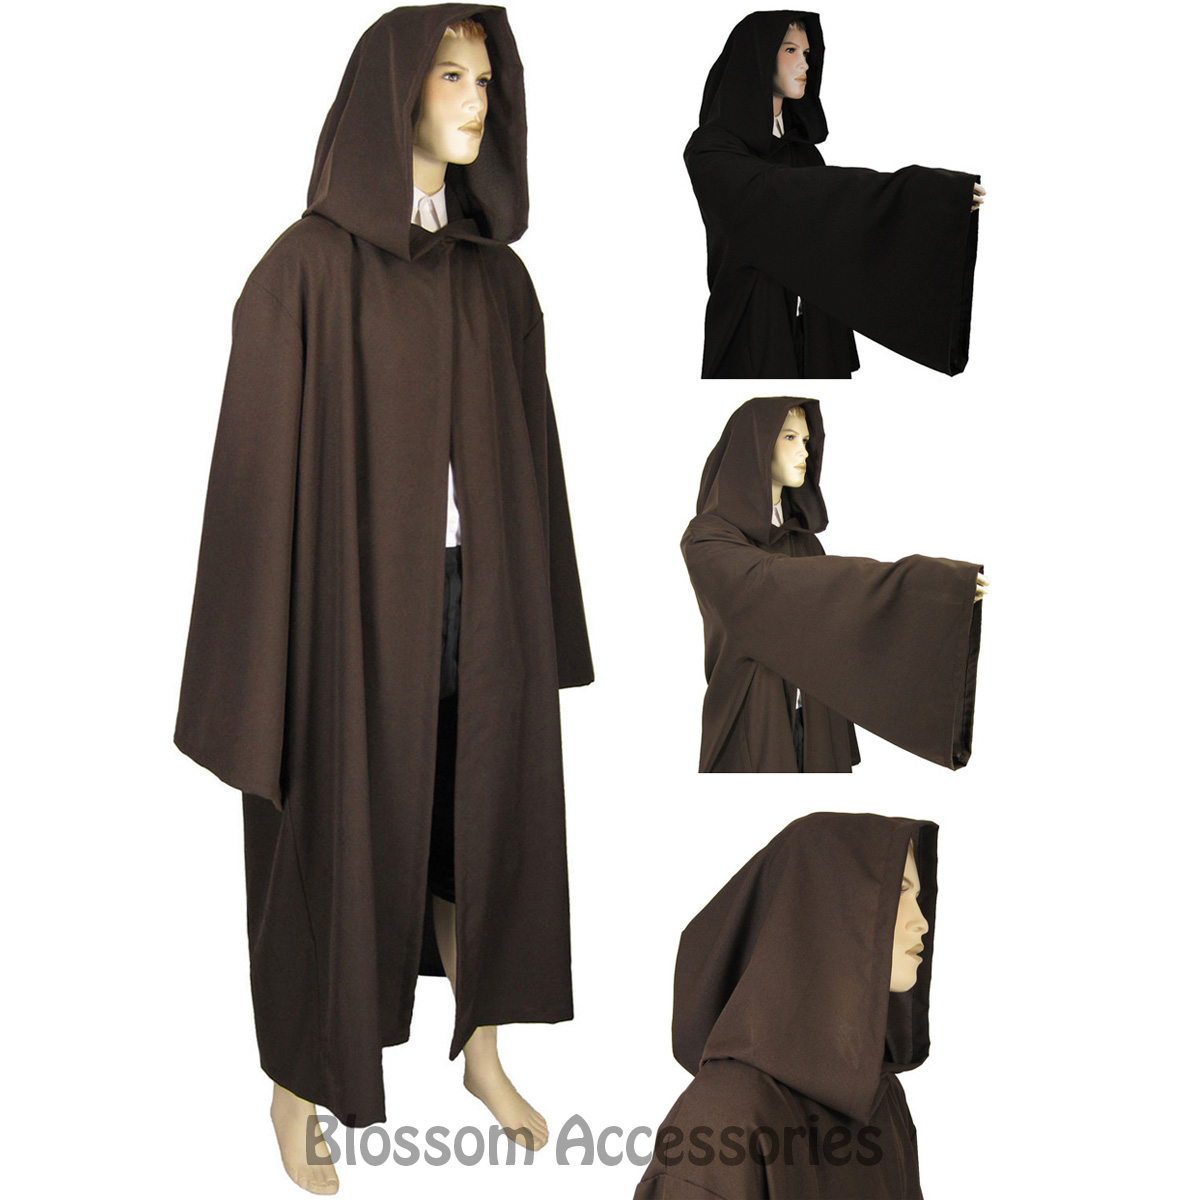 14663e6b0d Image is loading master wizard monk hooded robe costume jpg 1200x1200 Monk  robes with hoods